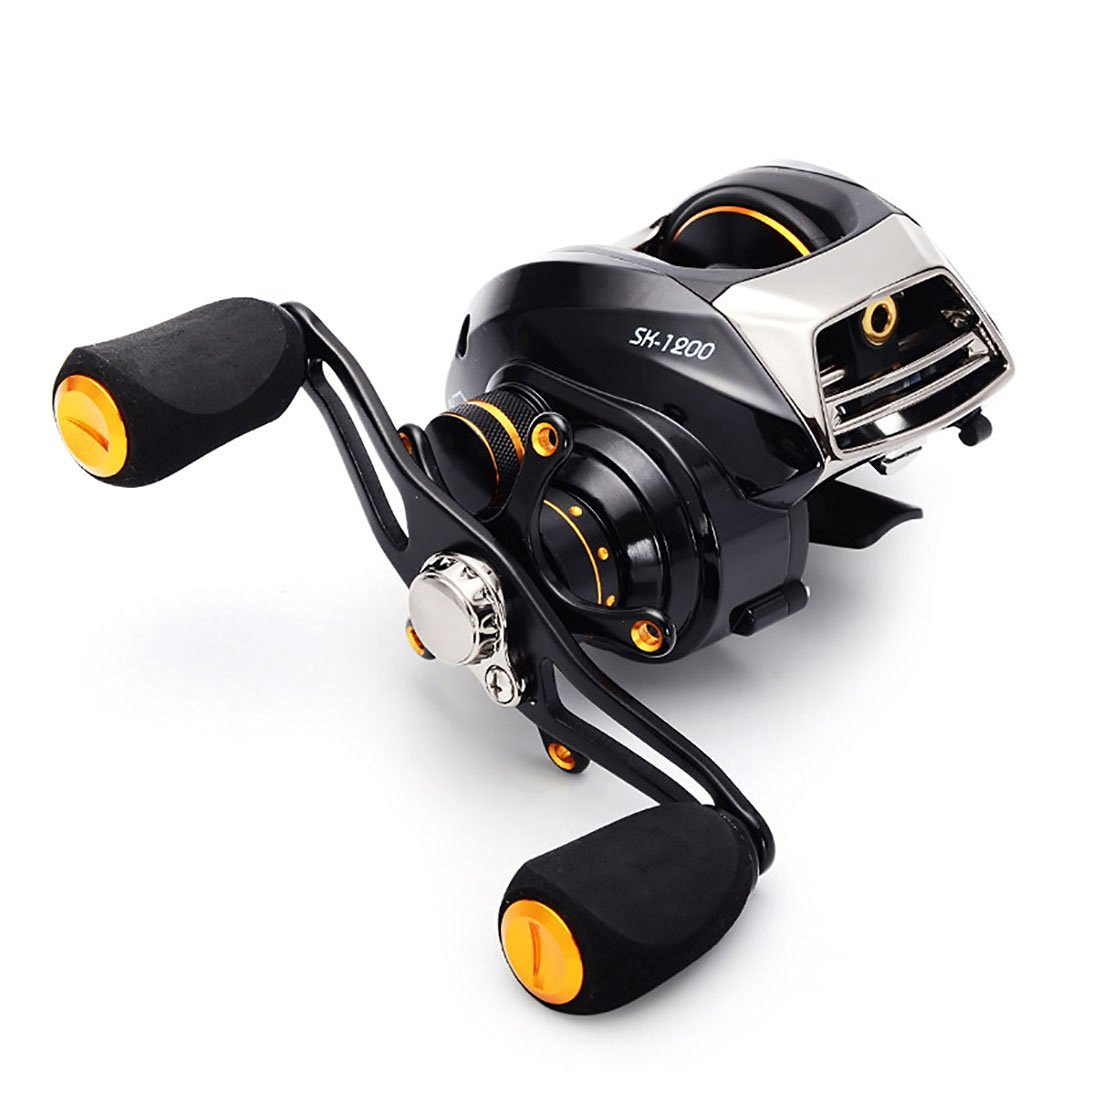 SeaKnight SK Baitcasting Reel Two Brake Magnetic Drag and Centrifugal Drag Systems 6.3:1 Gear Ratio 9 Lbs 14 Shielded Stainless Ball Bearings Ultra Smooth Fishing Casting Reel